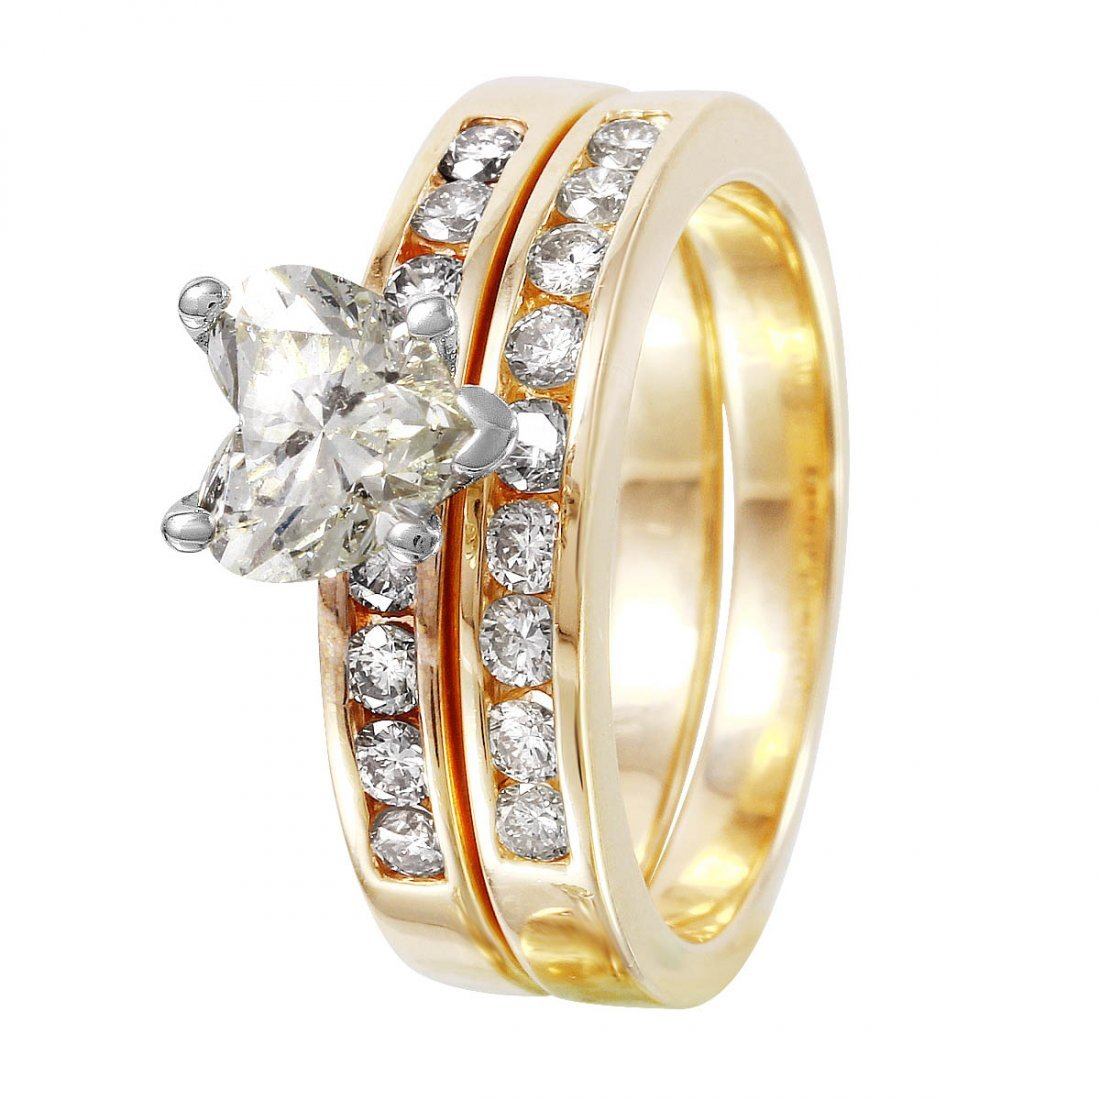 14KY Yellow Gold Diamond Engagement Ring